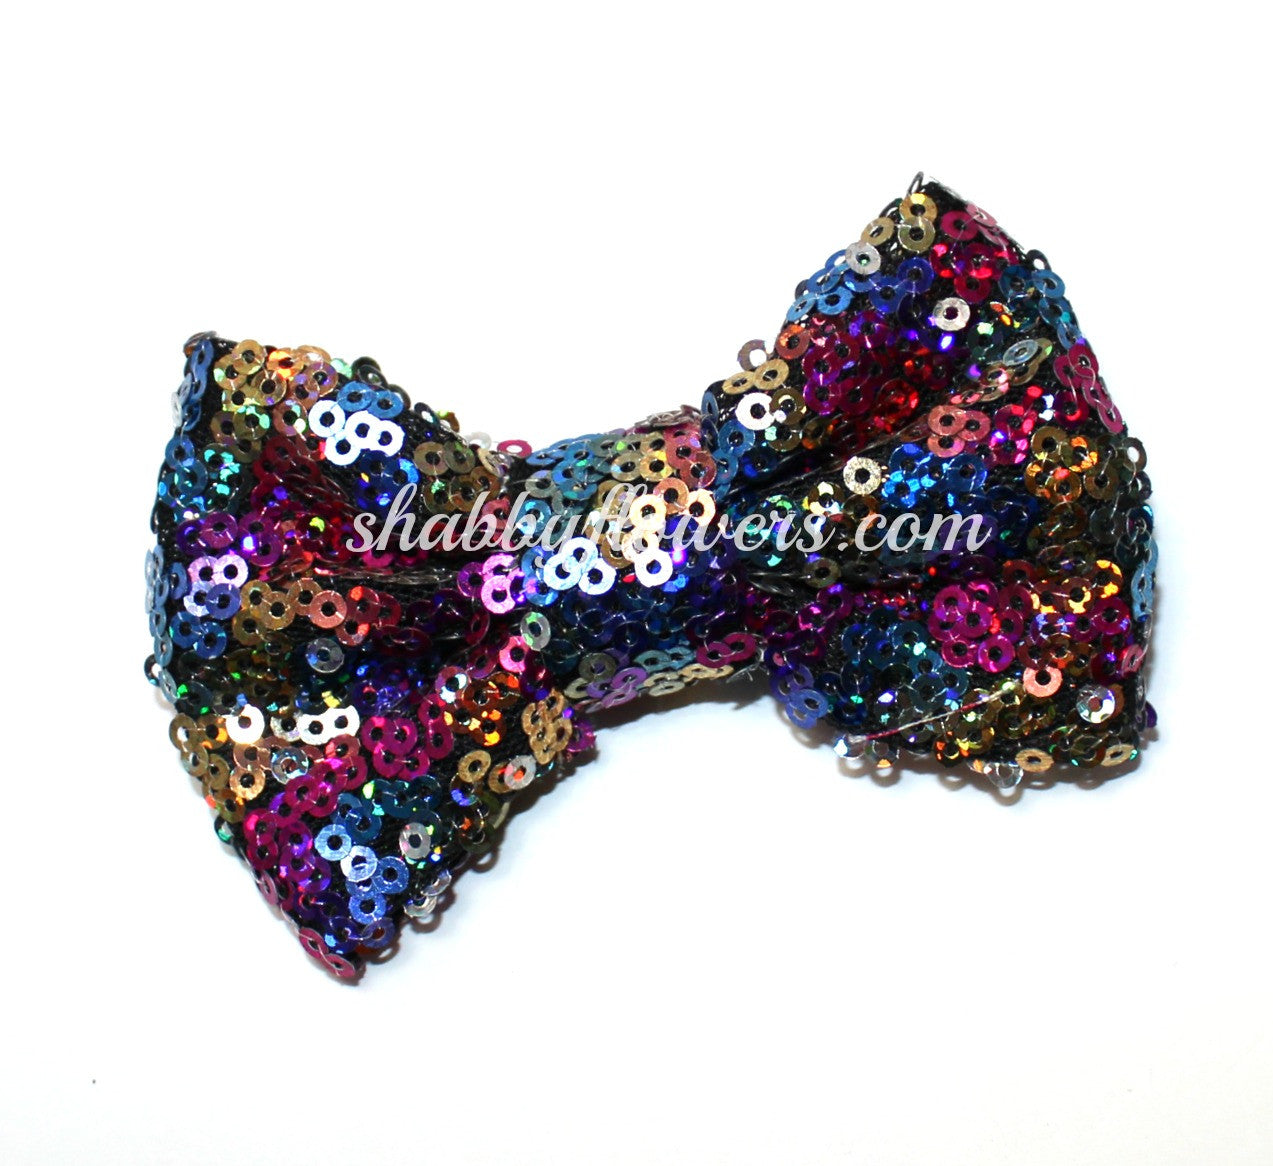 Medium Sequin Bow - Multicolor - shabbyflowers.com